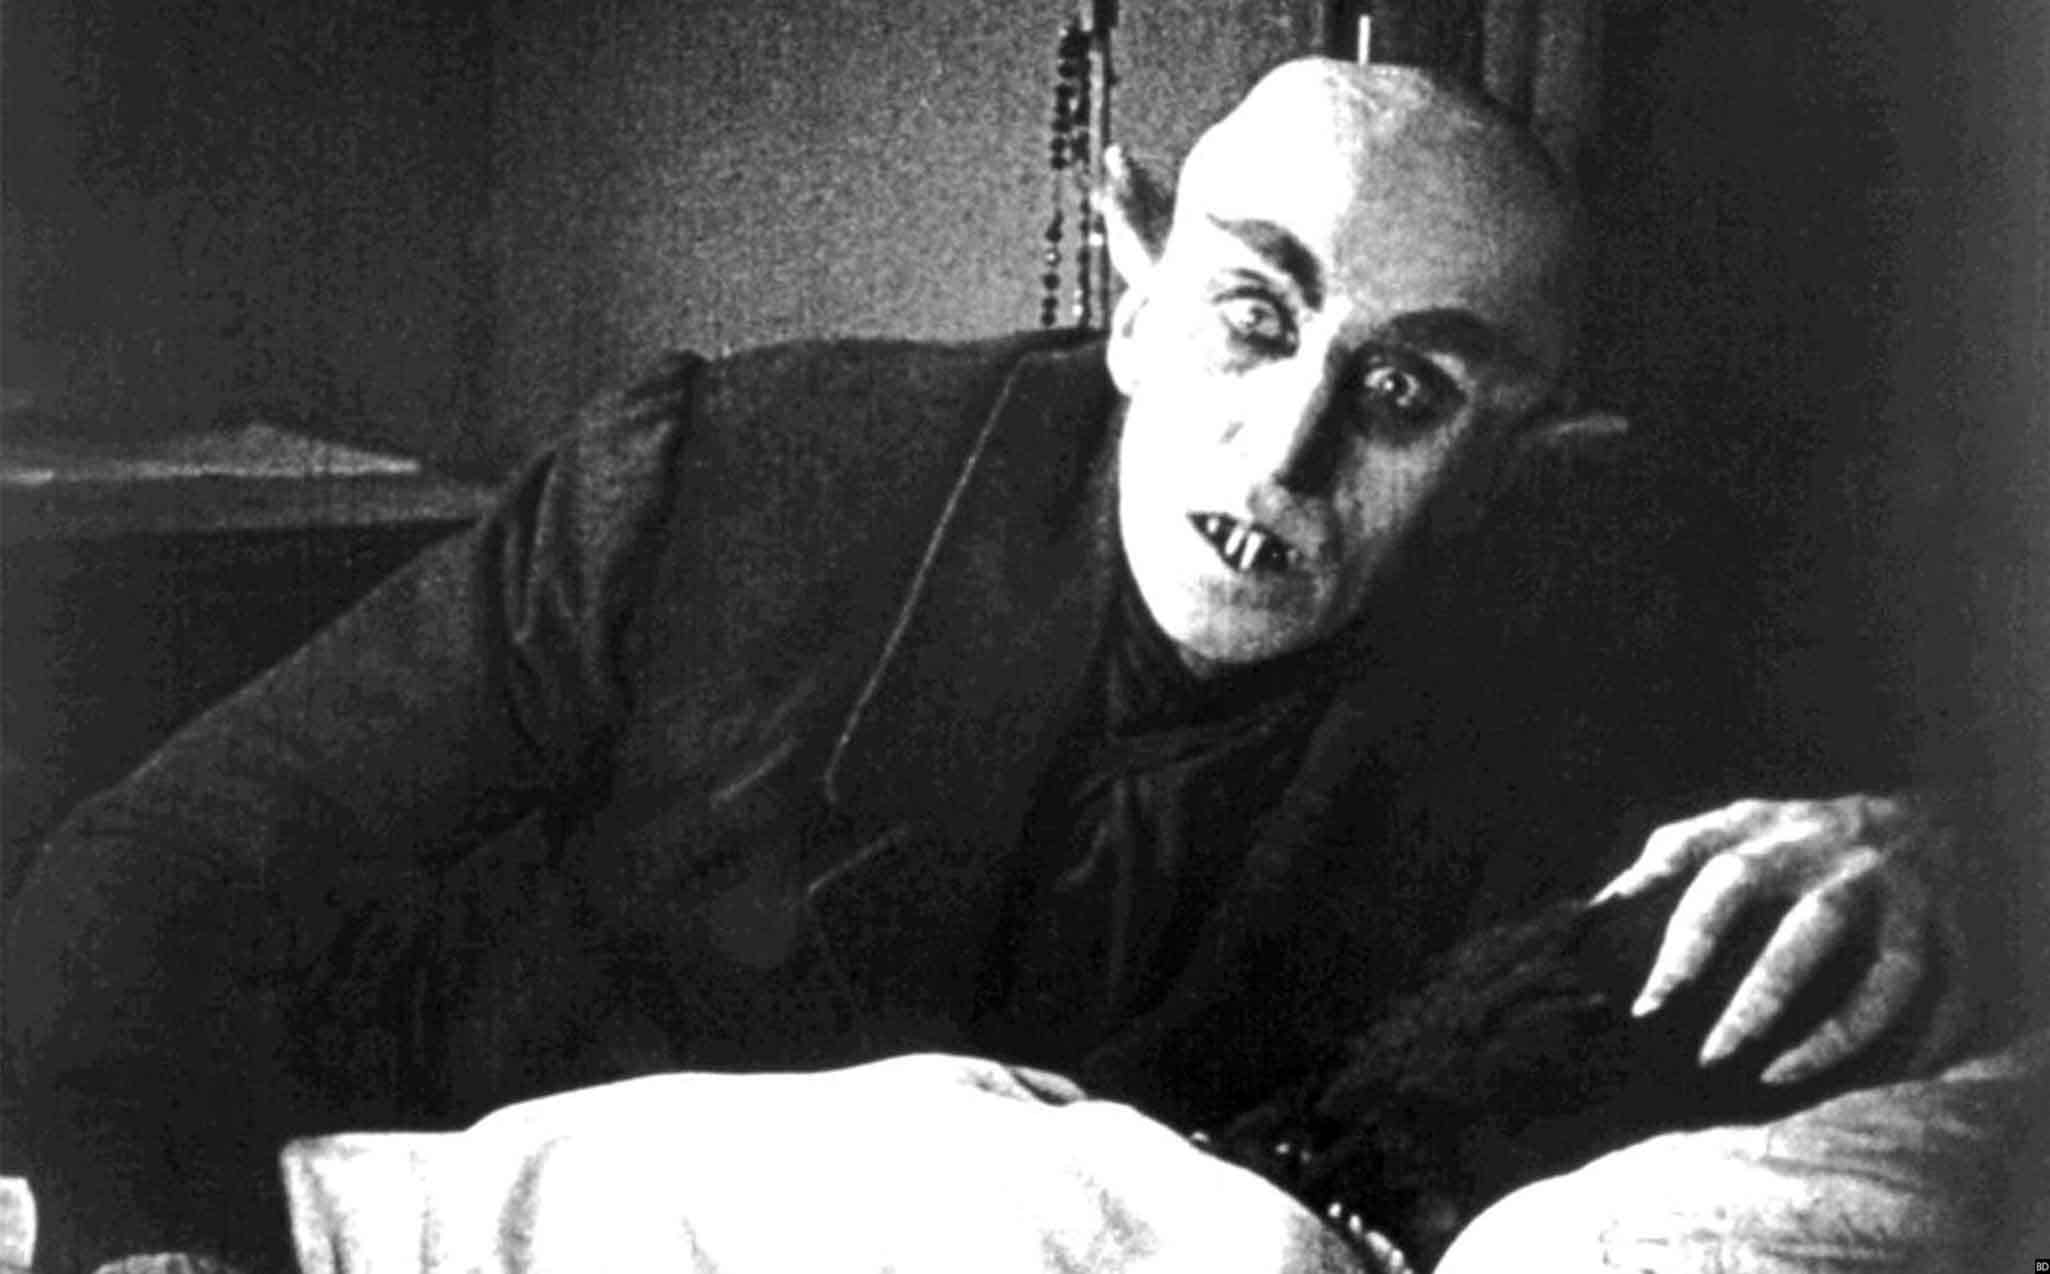 Nosferatu - This Day in Horror: Happy Birthday F. W. Murnau